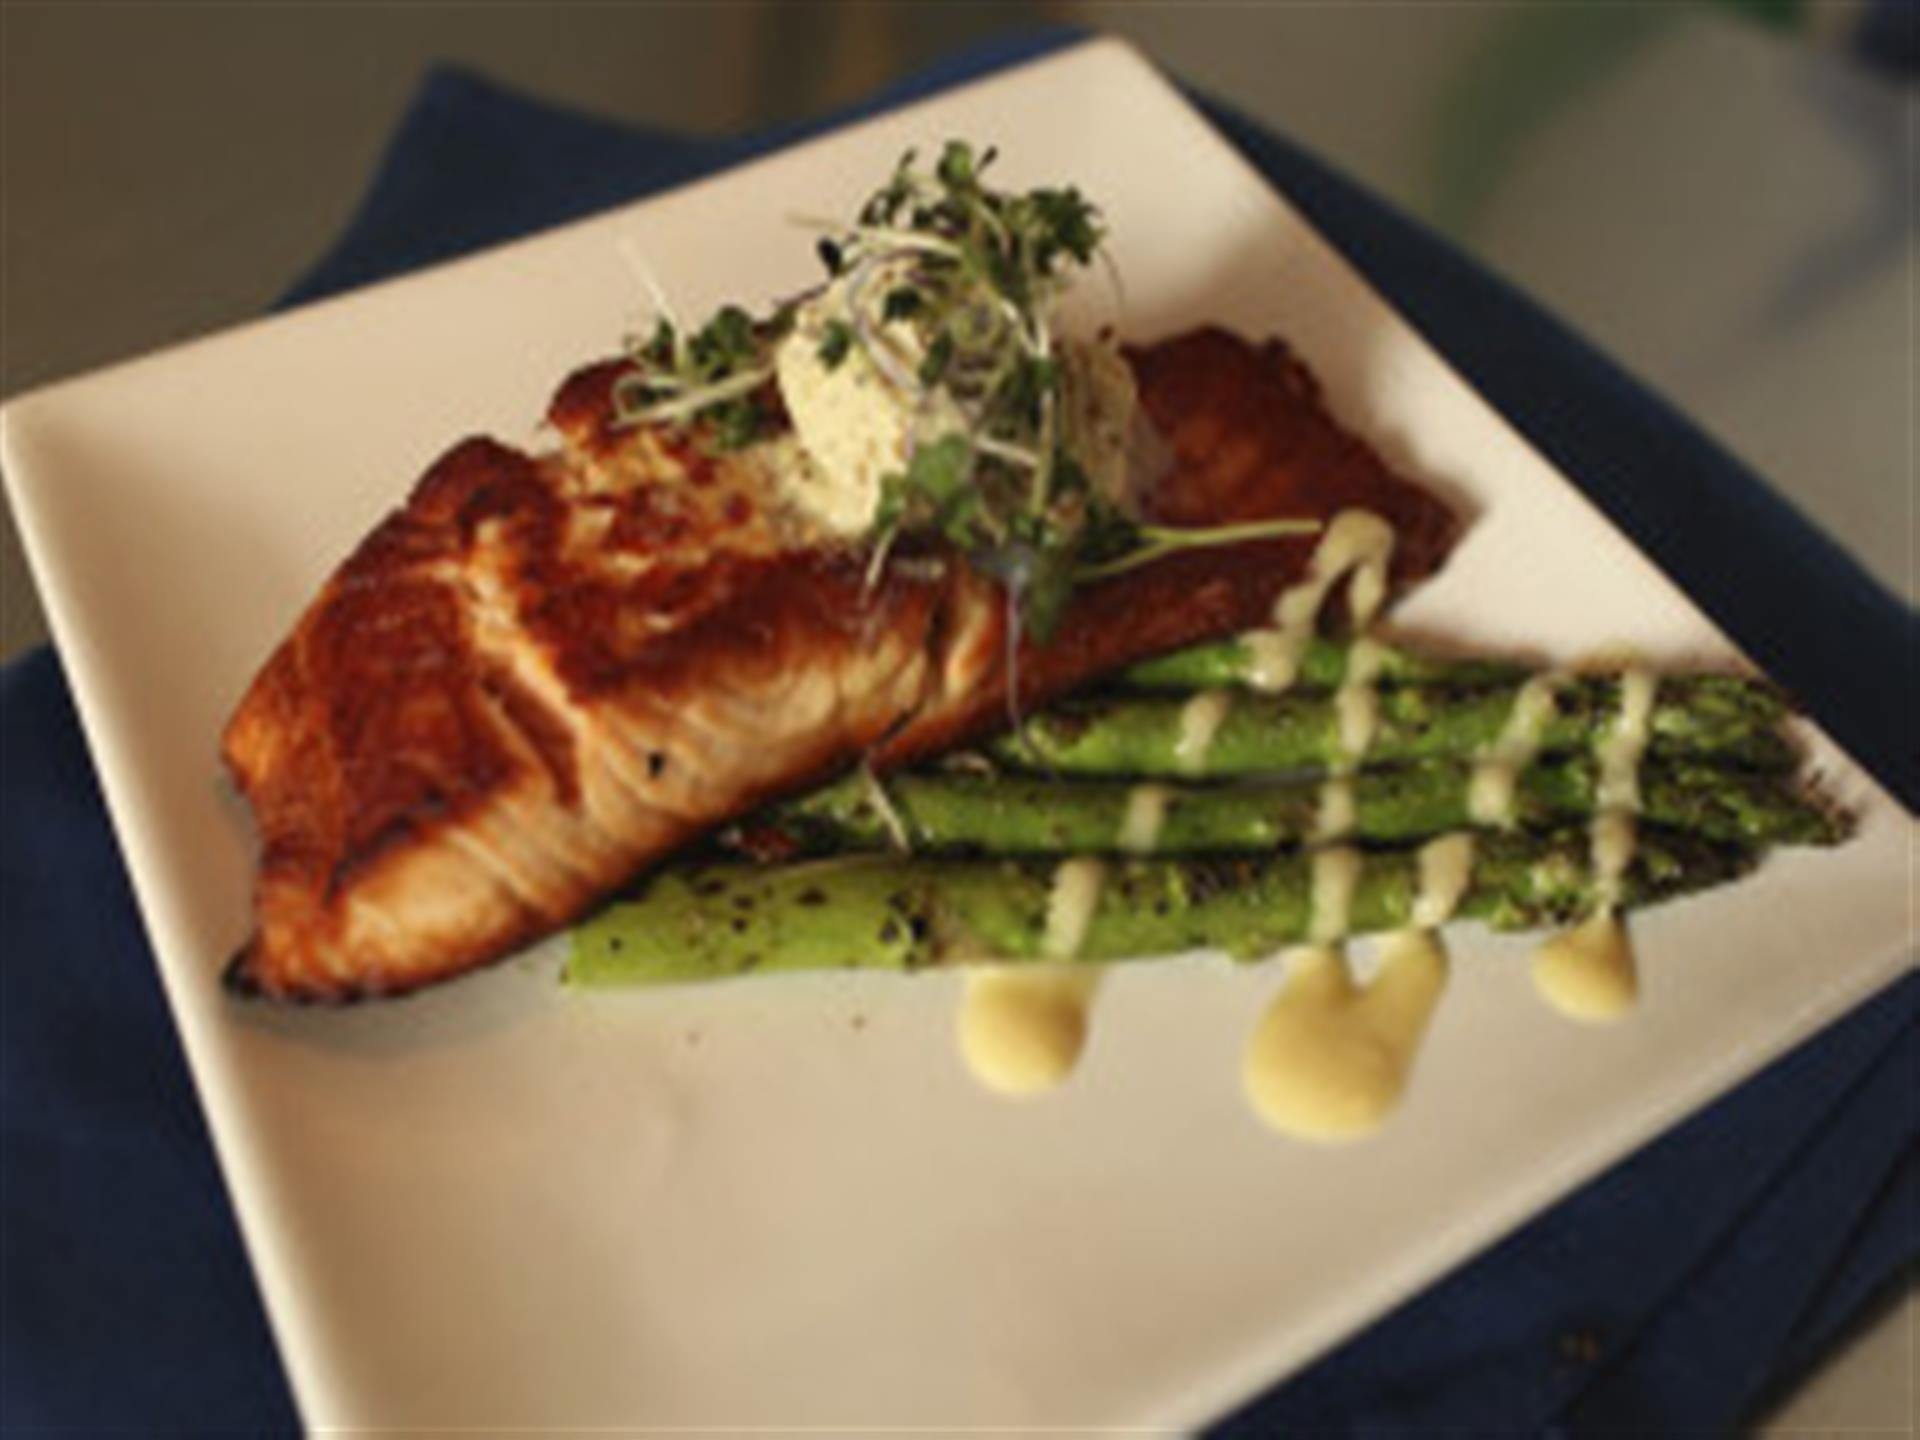 Salmon over asparagus in white dish.